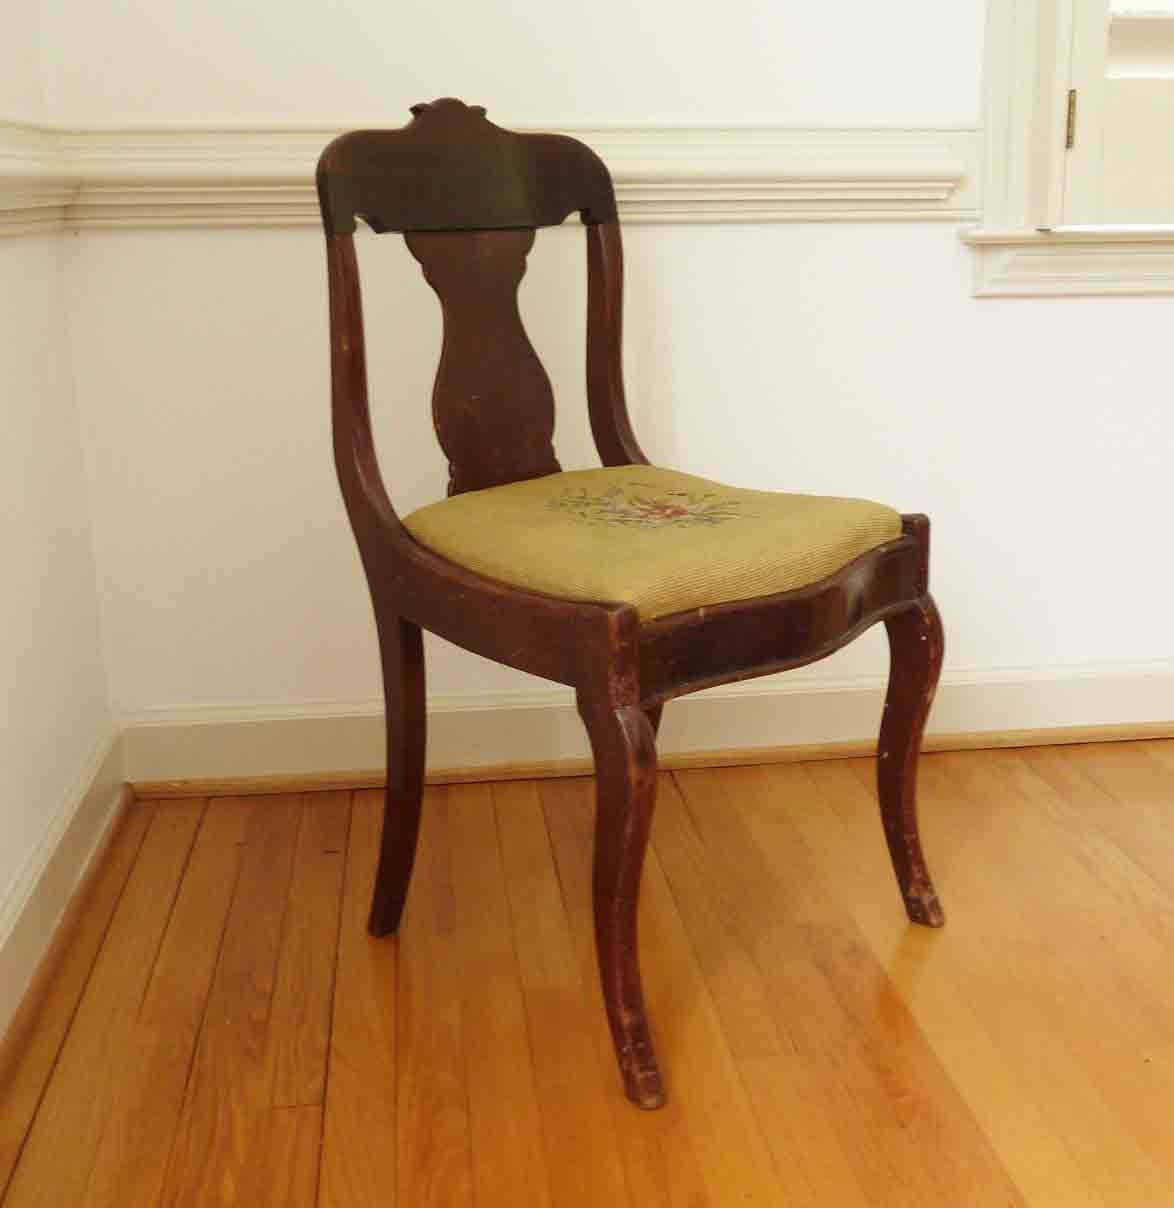 wood hand chair blue sashes wedding vintage antique embroidered seat home decor